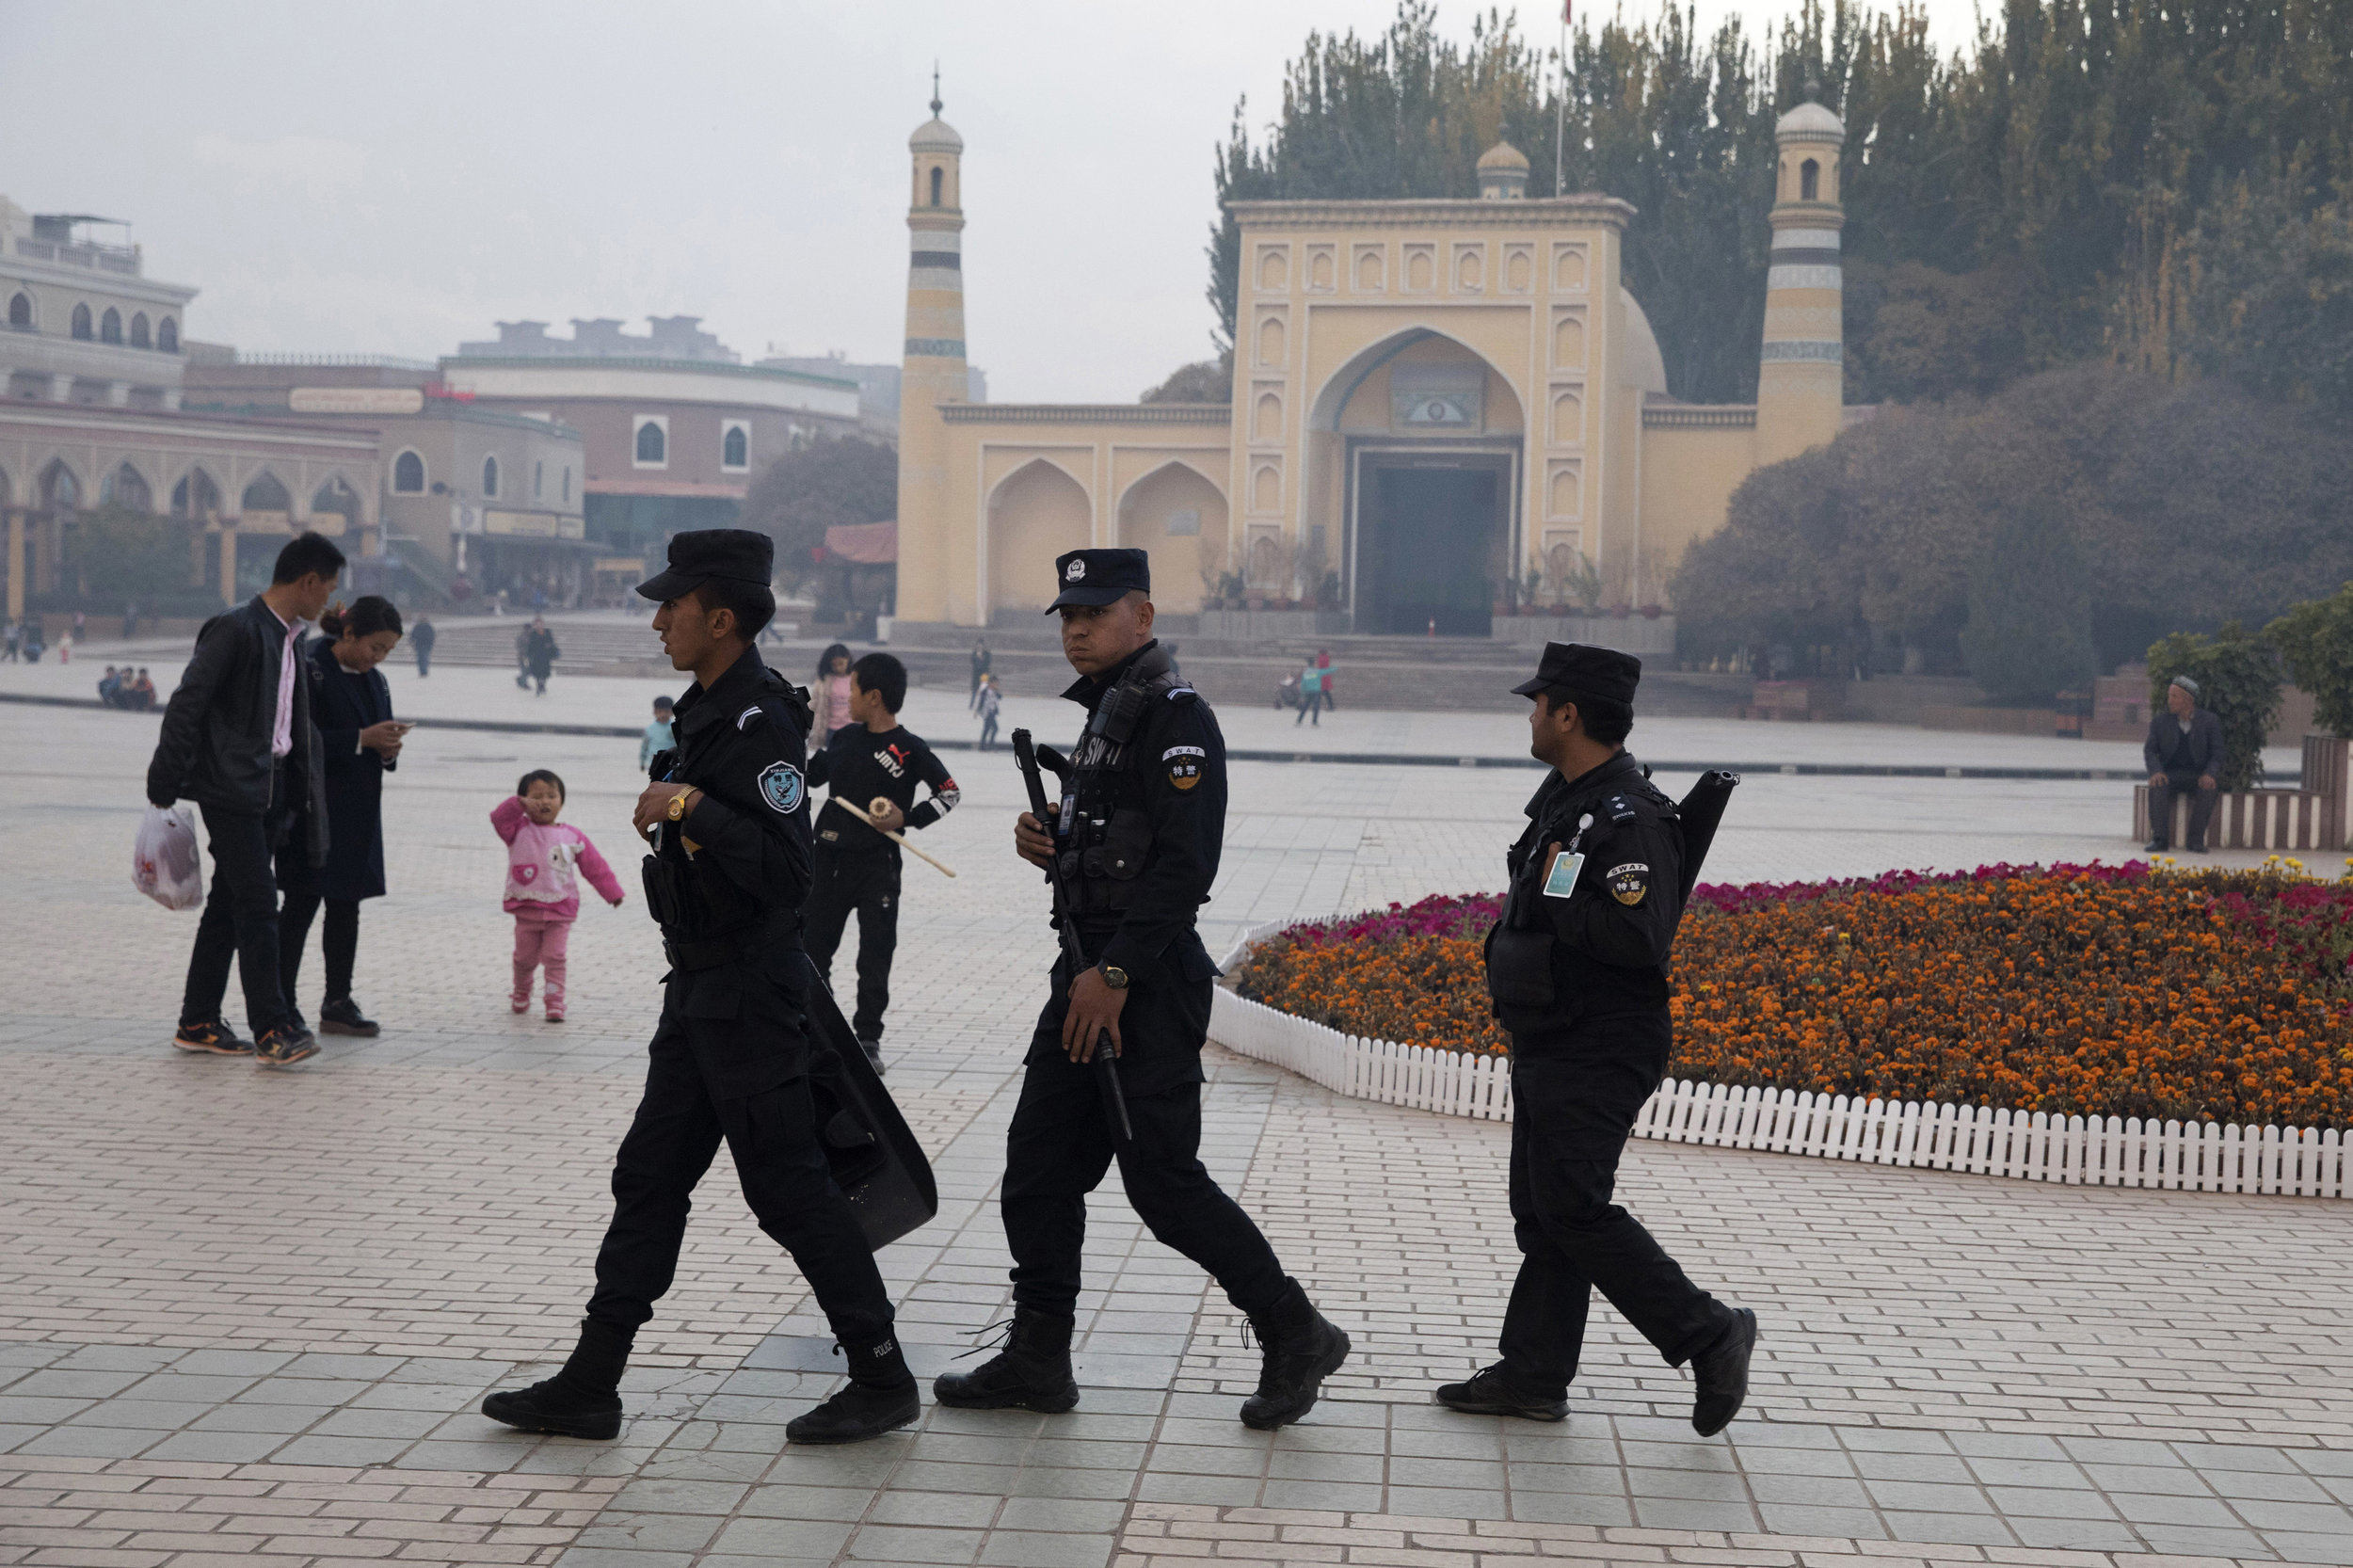 Figure 4. Uighur security personnel patrol near the Id Kah Mosque in Kashgar in western China's Xinjiang region, November 4, 2017. Courtesy Ng Han Guan/AP Images.